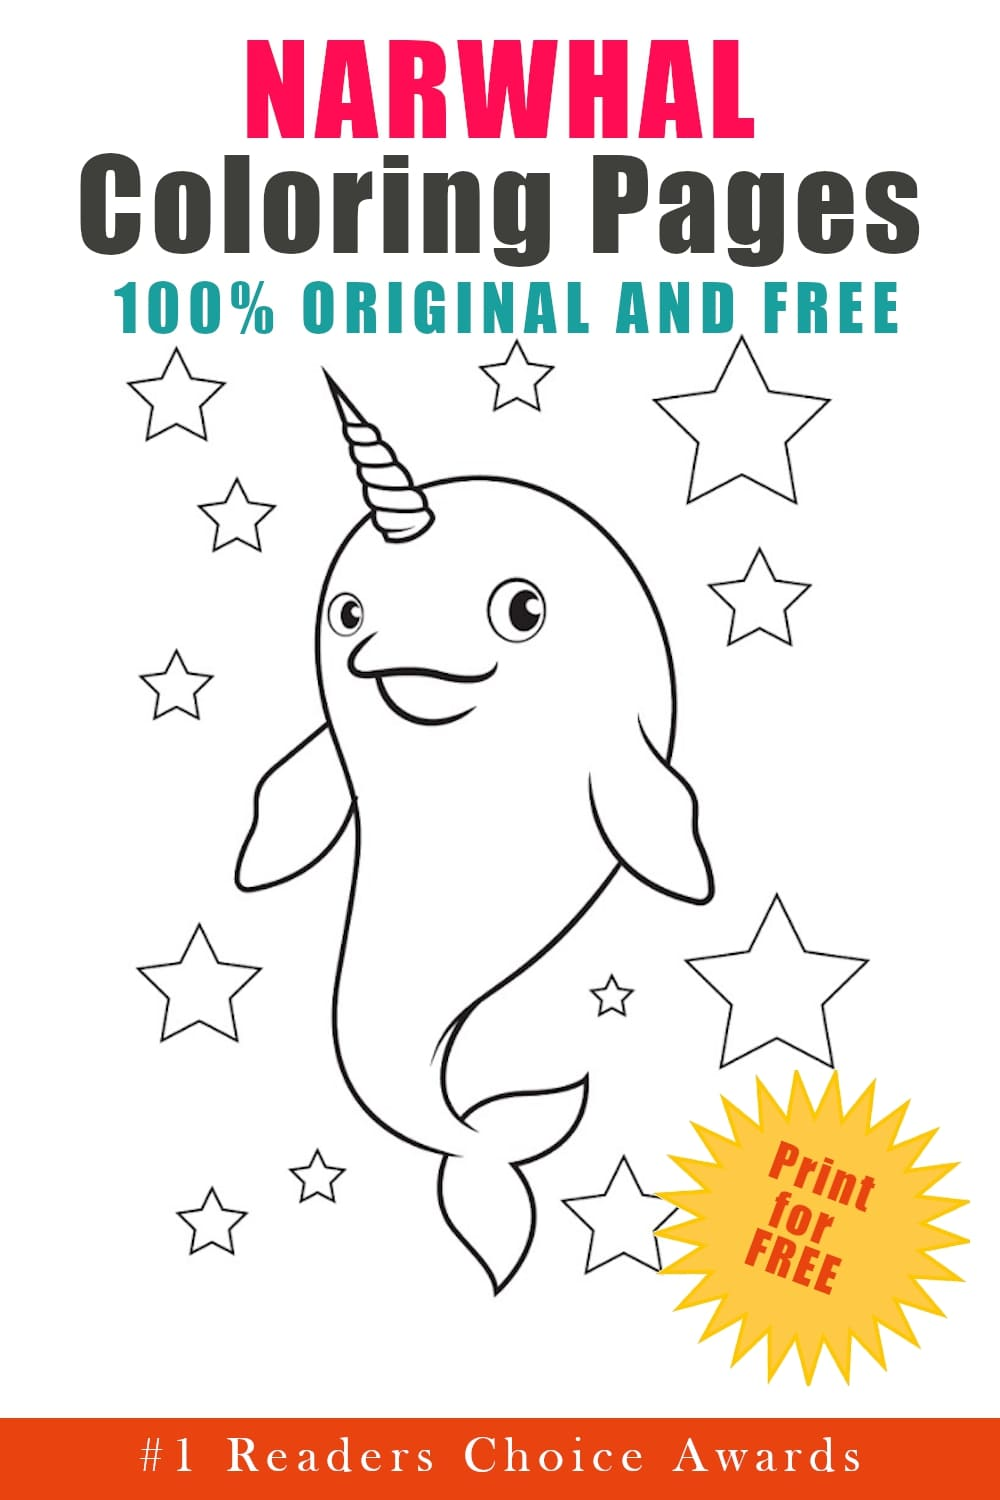 original and free narwhal coloring pages